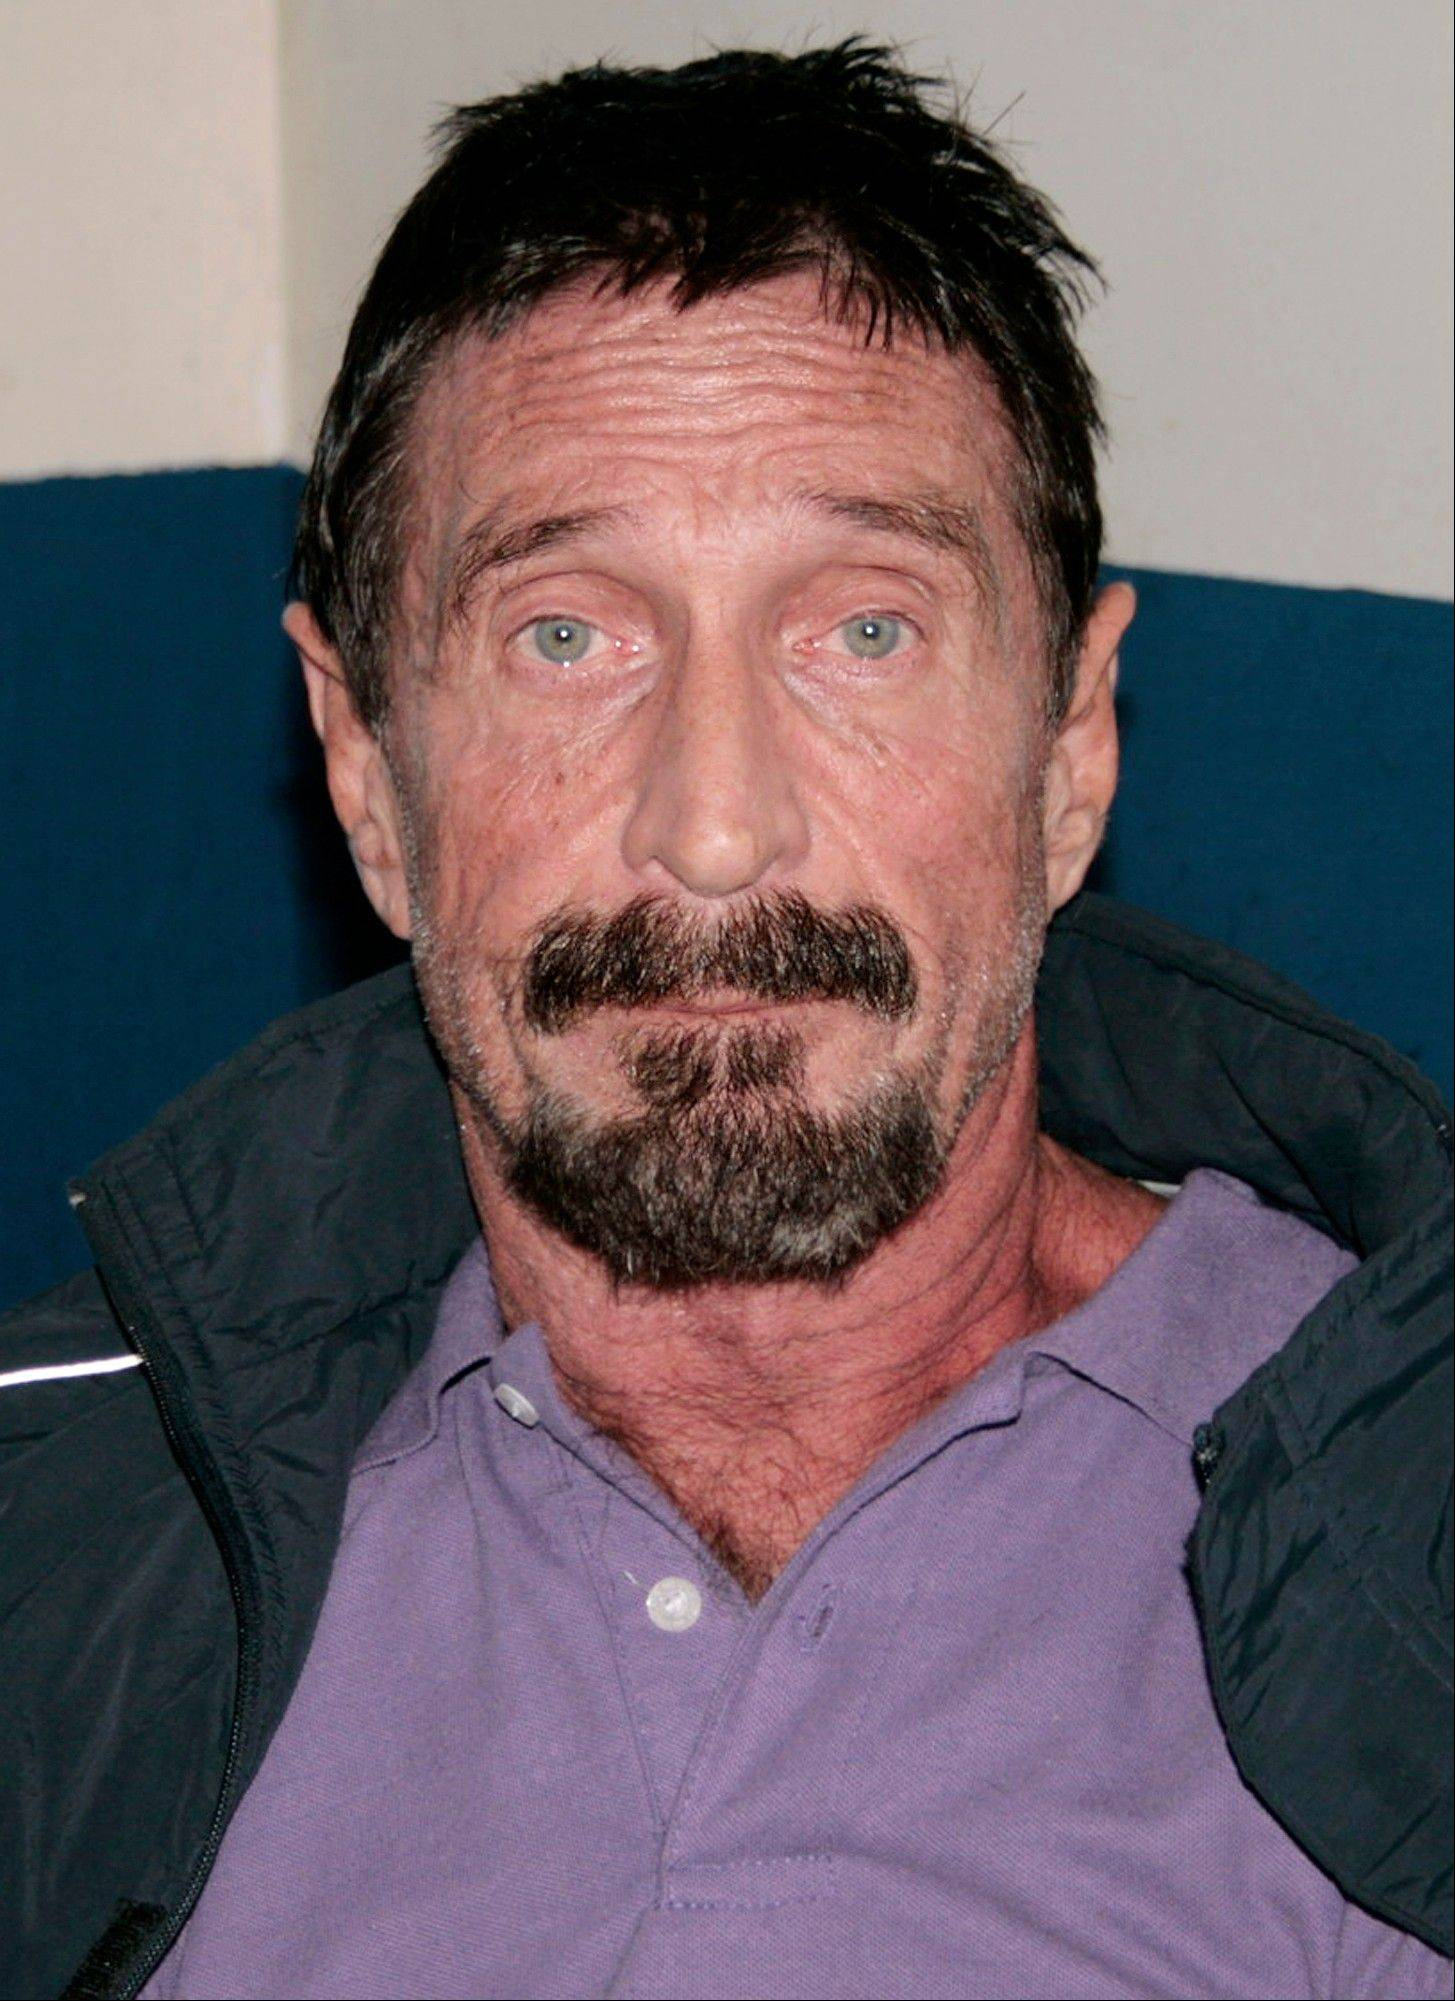 Software company founder John McAfee is photographed in an immigration detention center in Guatemala City, Thursday, Dec. 6, 2012.